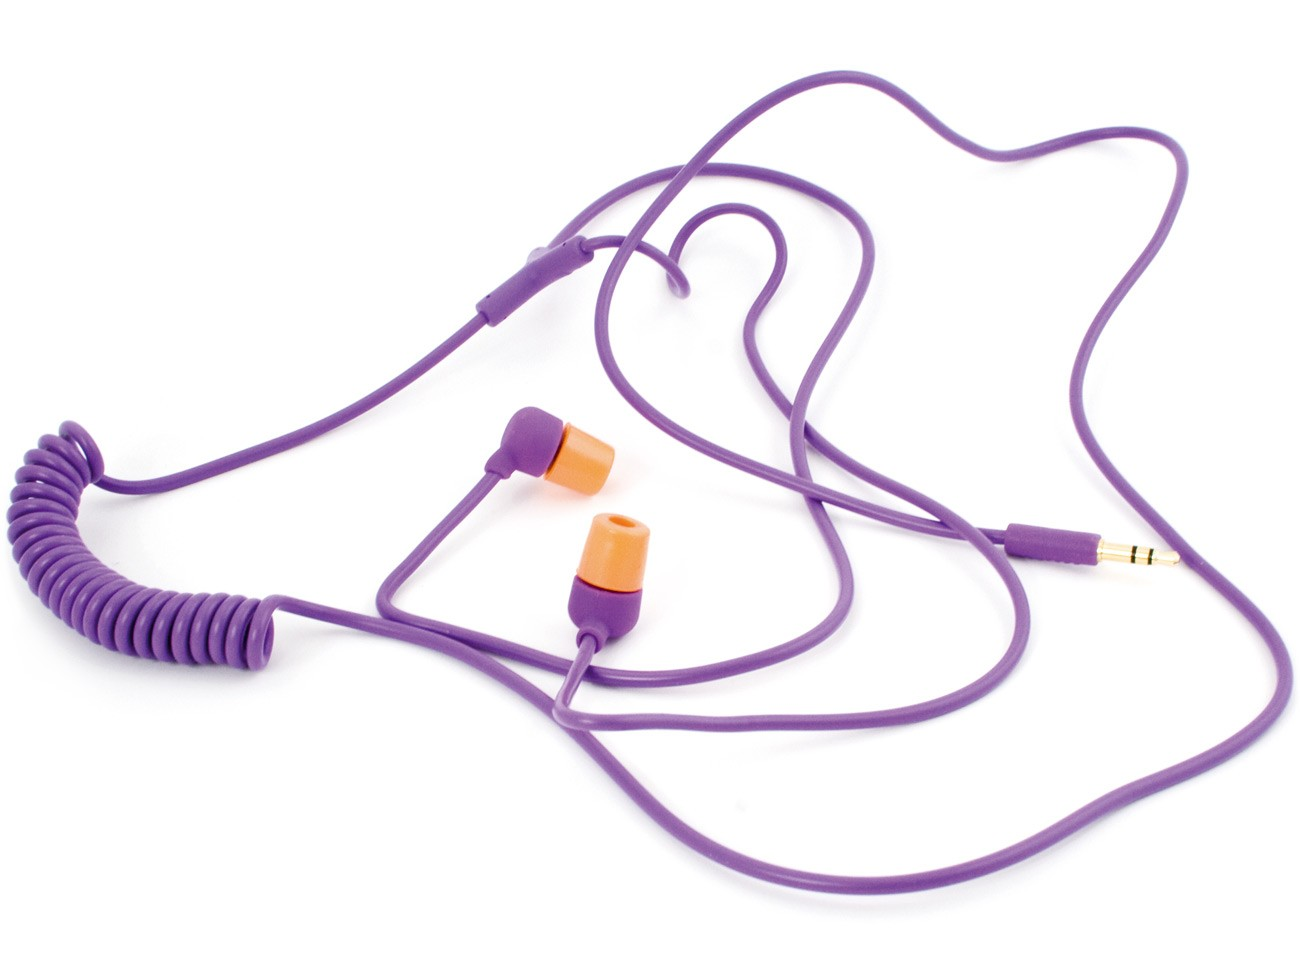 AIAIAI Swirl/Y-model Earphones - Purple